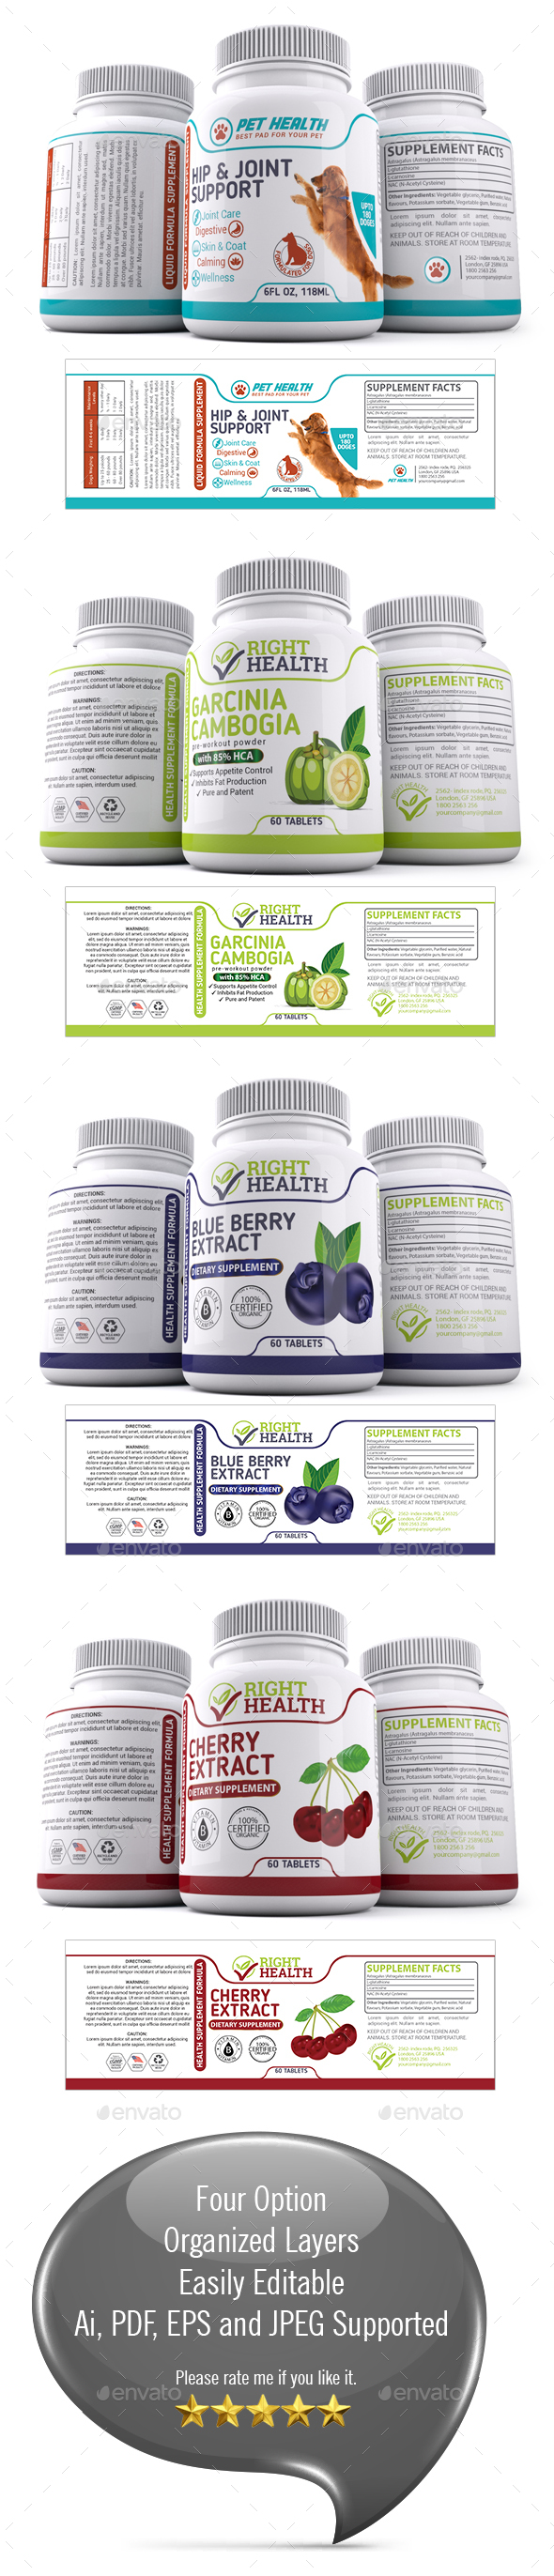 Supplement facts label psd for Supplement facts template